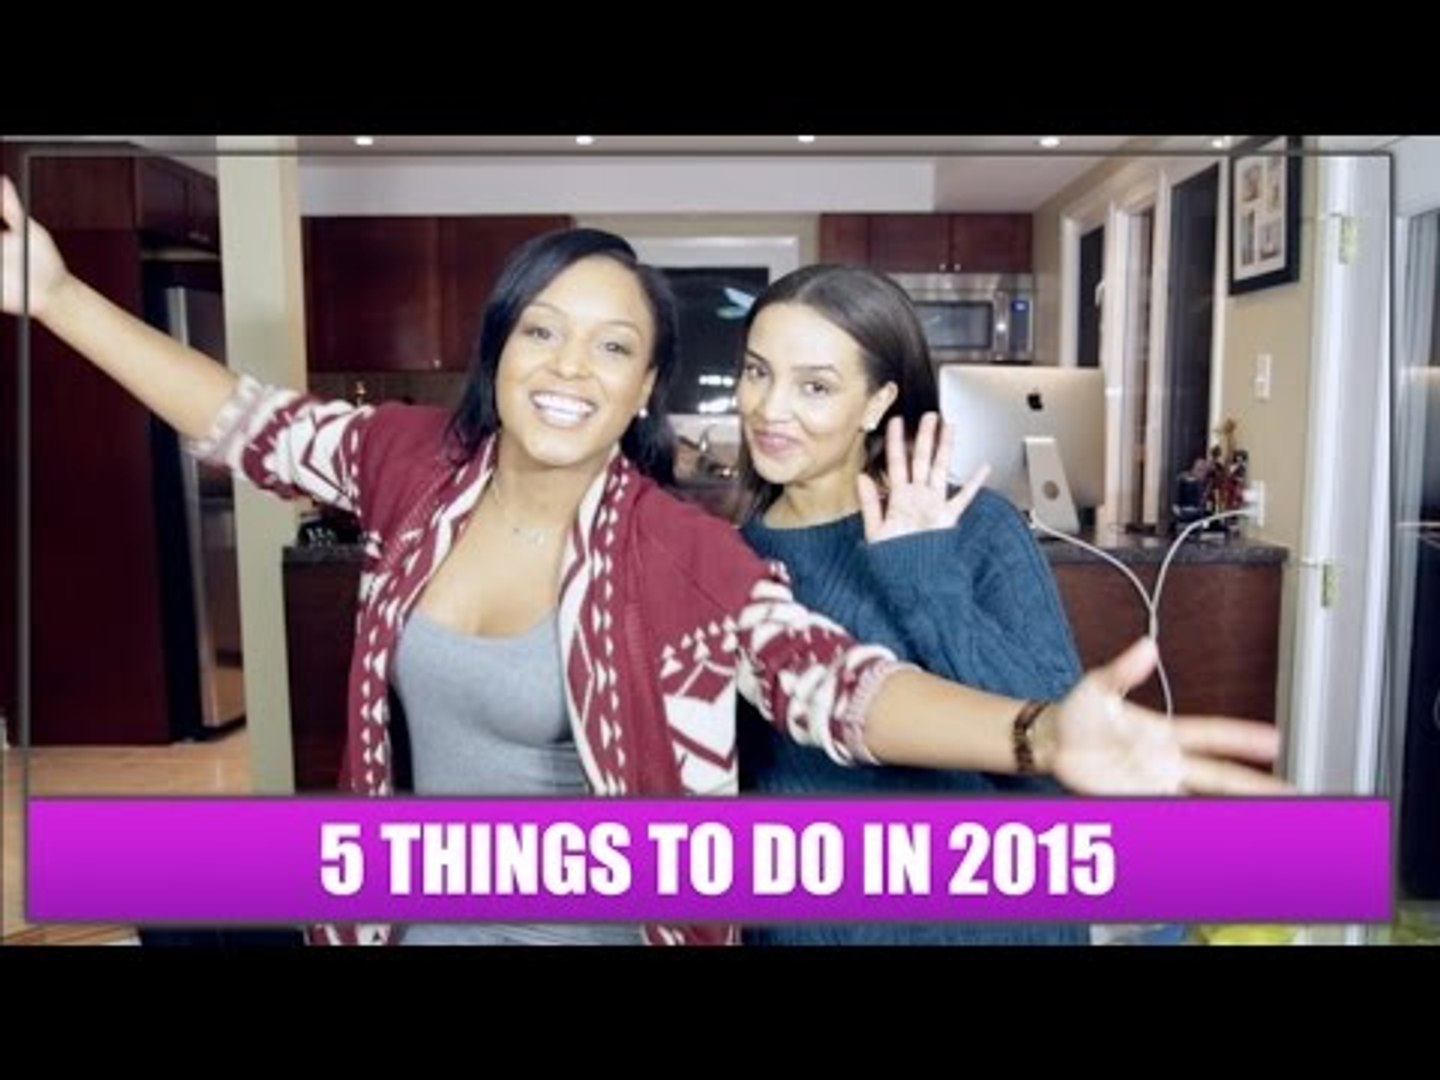 5 THINGS TO DO IN 2015   LaToyaForever